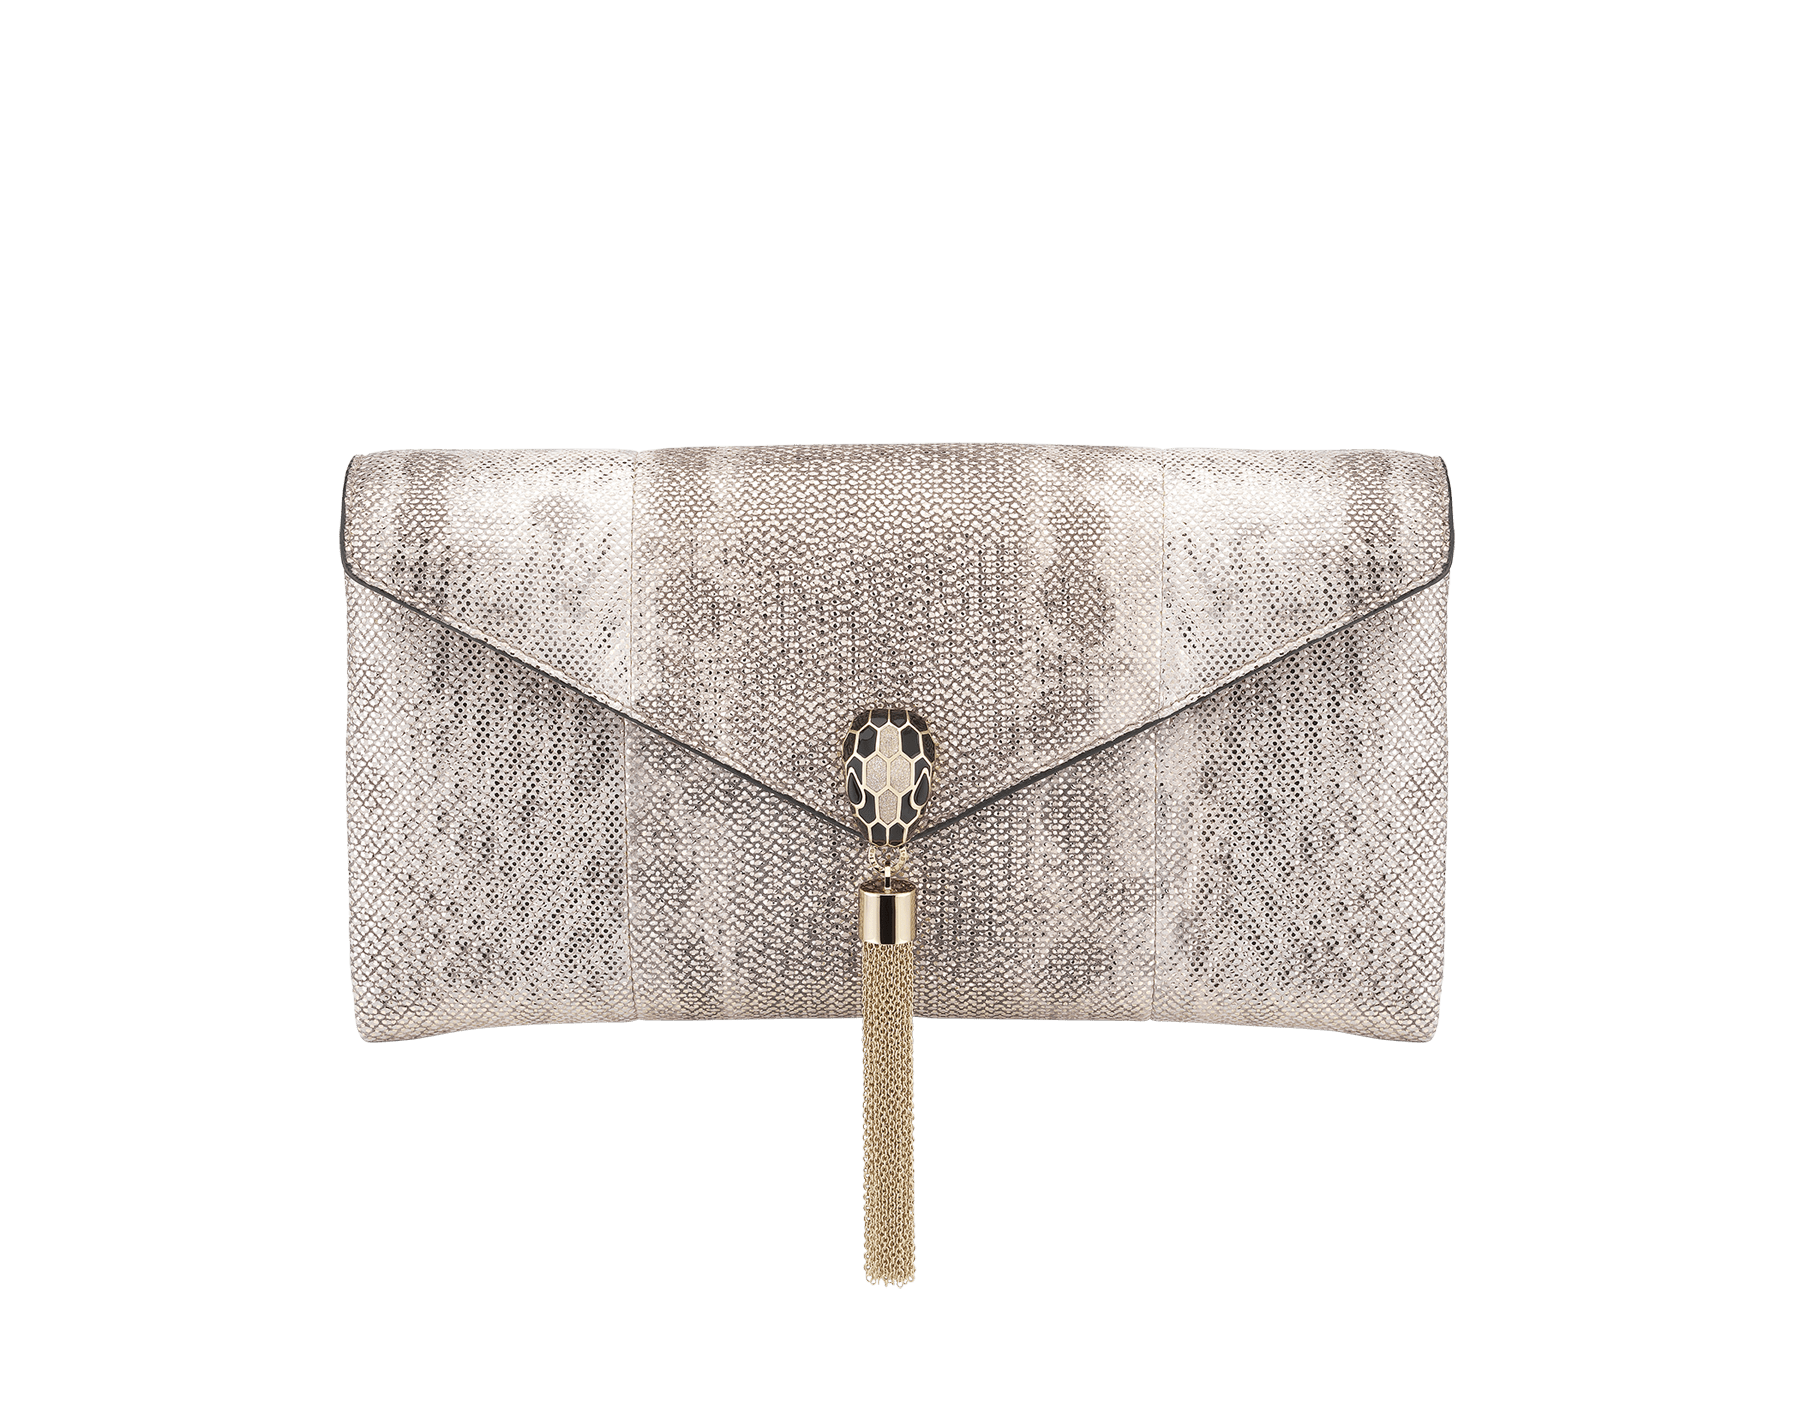 Serpenti evening clutch in milky opal metallic karung skin. Snakehead stud closure with tassel in light gold plated brass and top decorated with black and glitter milky opal enamel, and black onyx eyes. 526-001-0817S-MK image 1